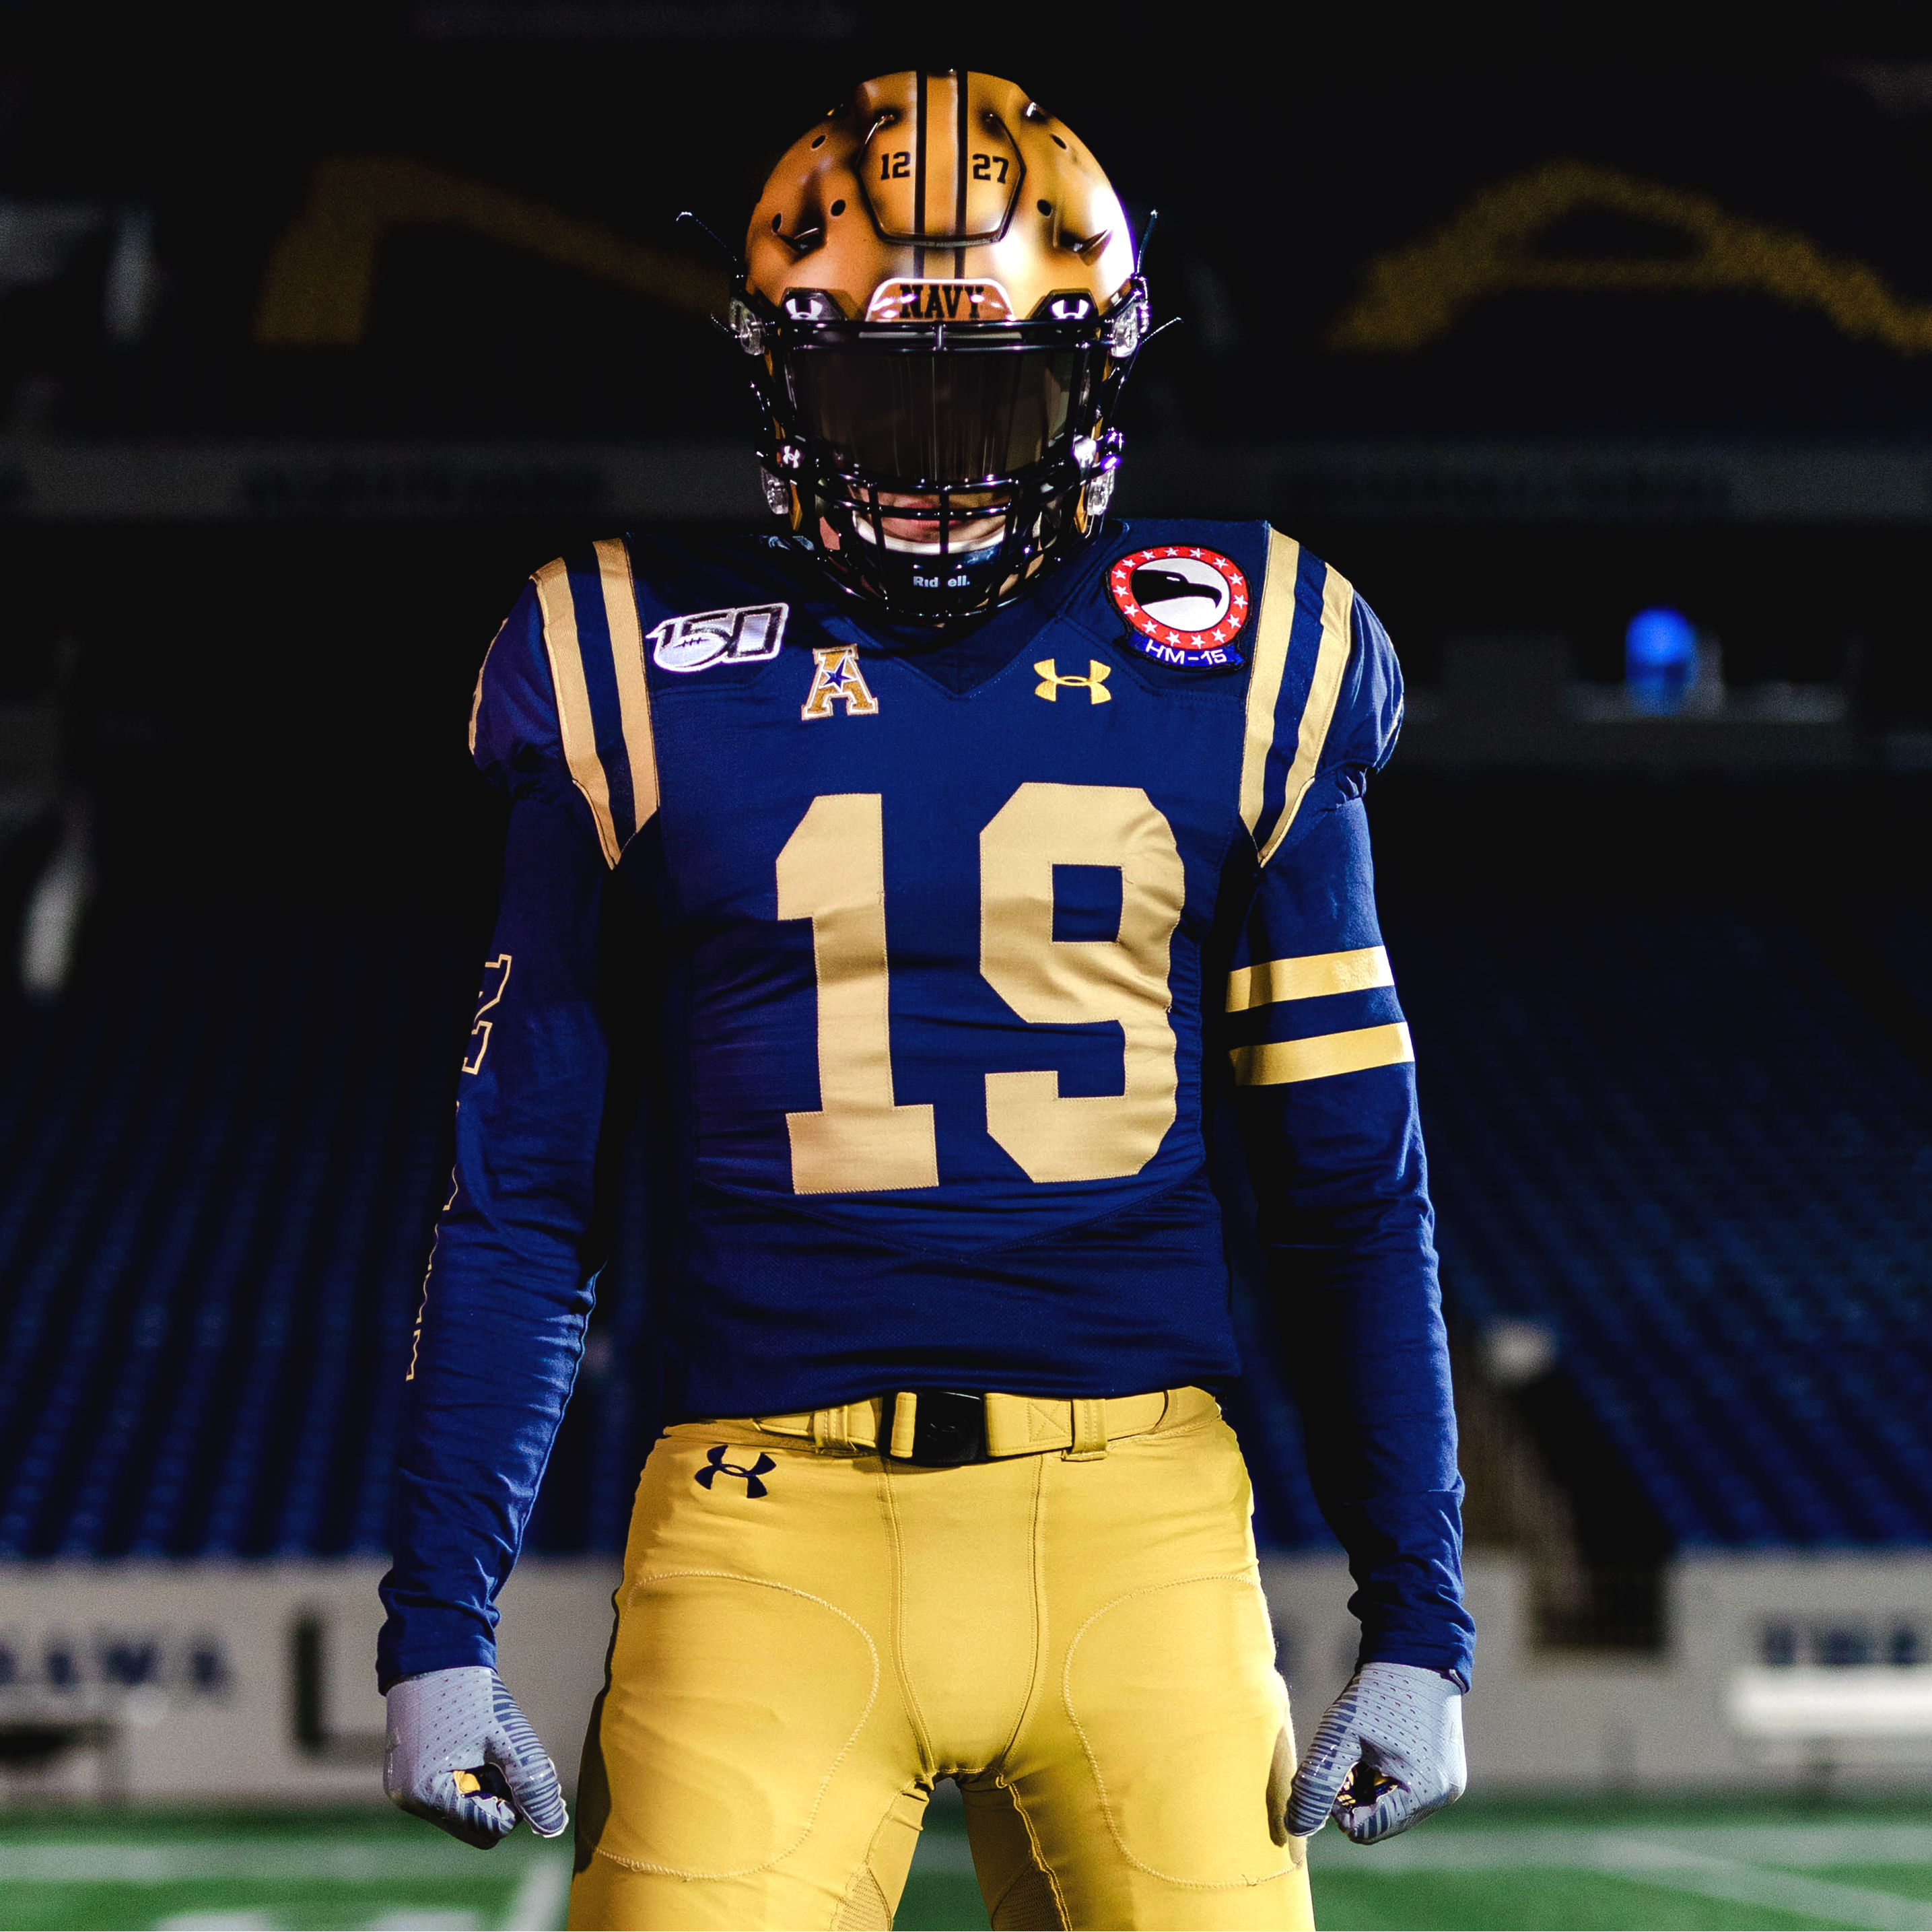 Under Armour unveils throwback uniforms for Army-Navy game ...